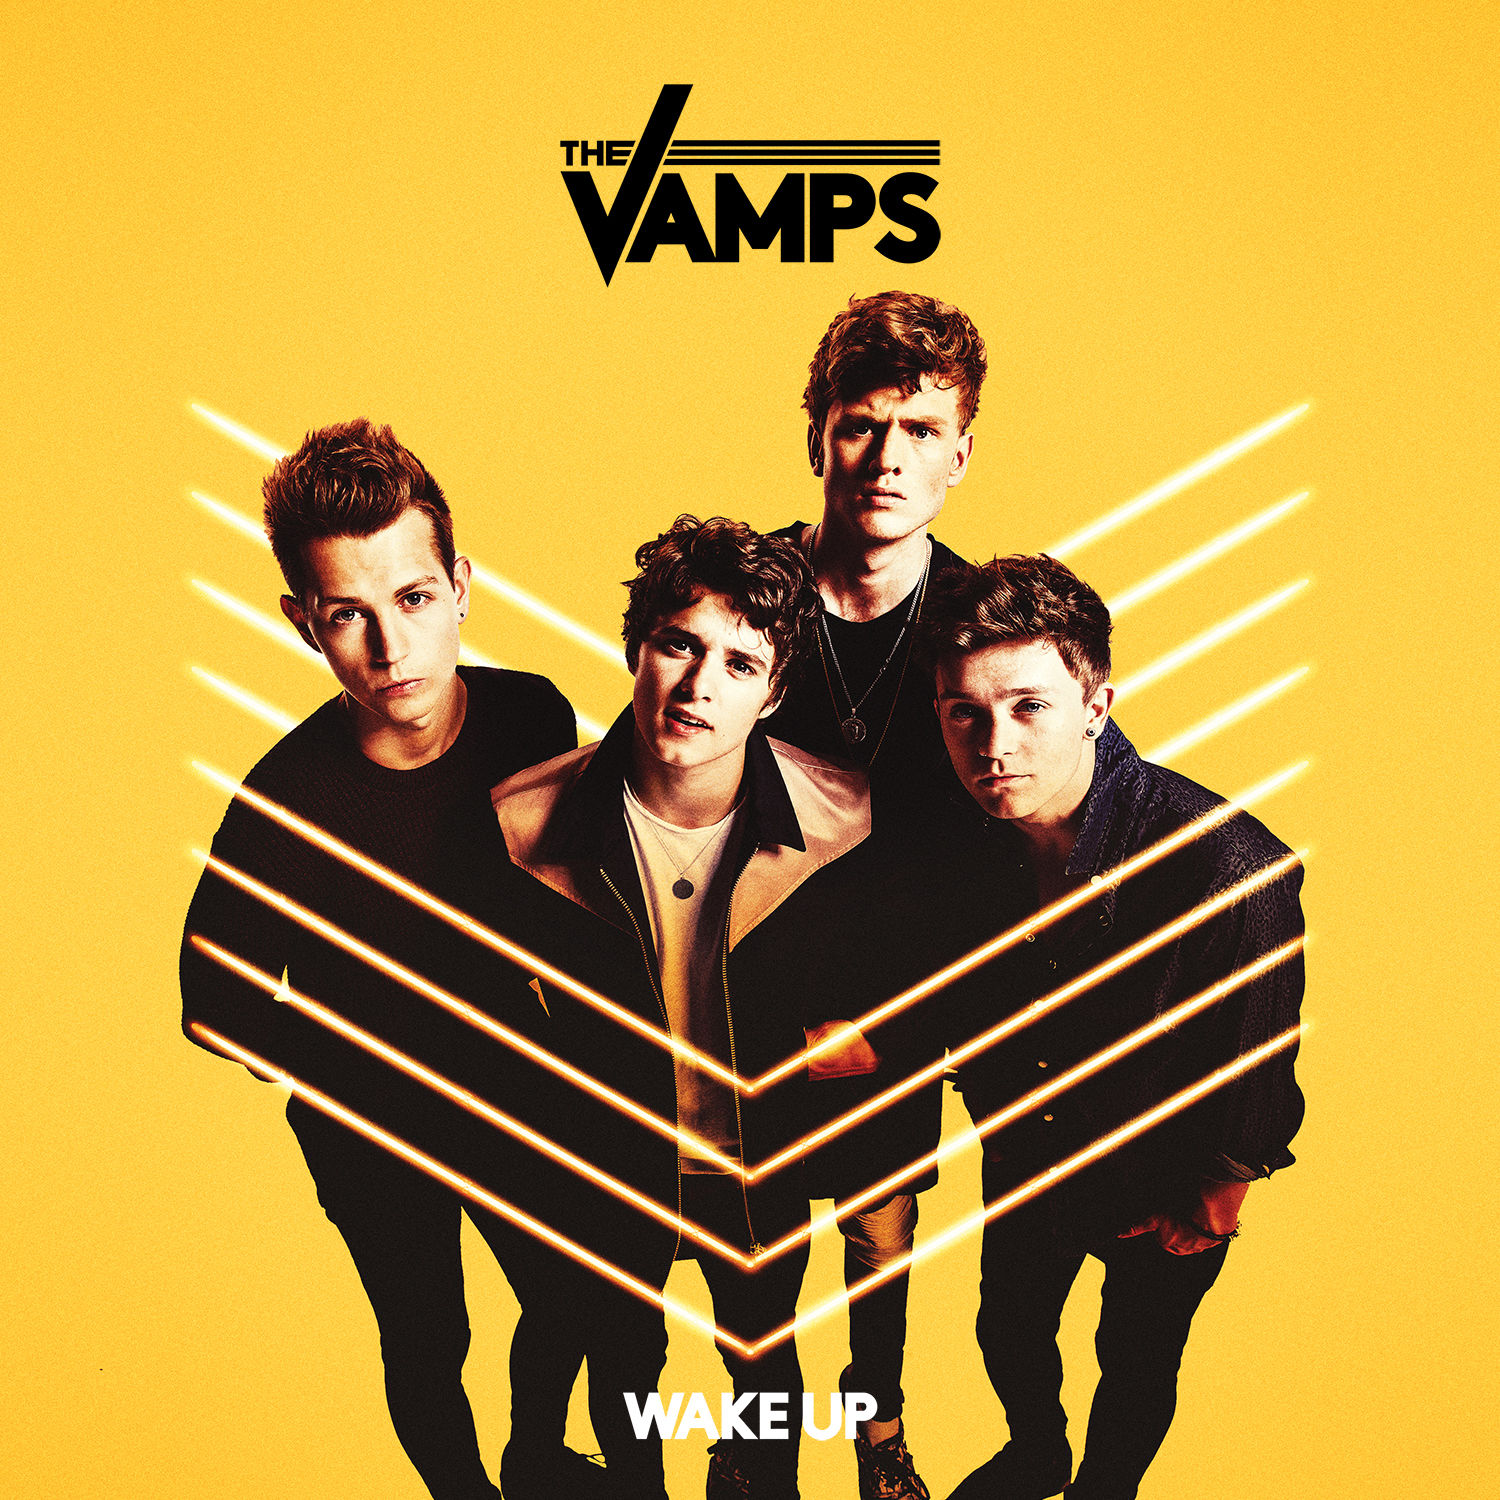 Wake up the vamps download zip